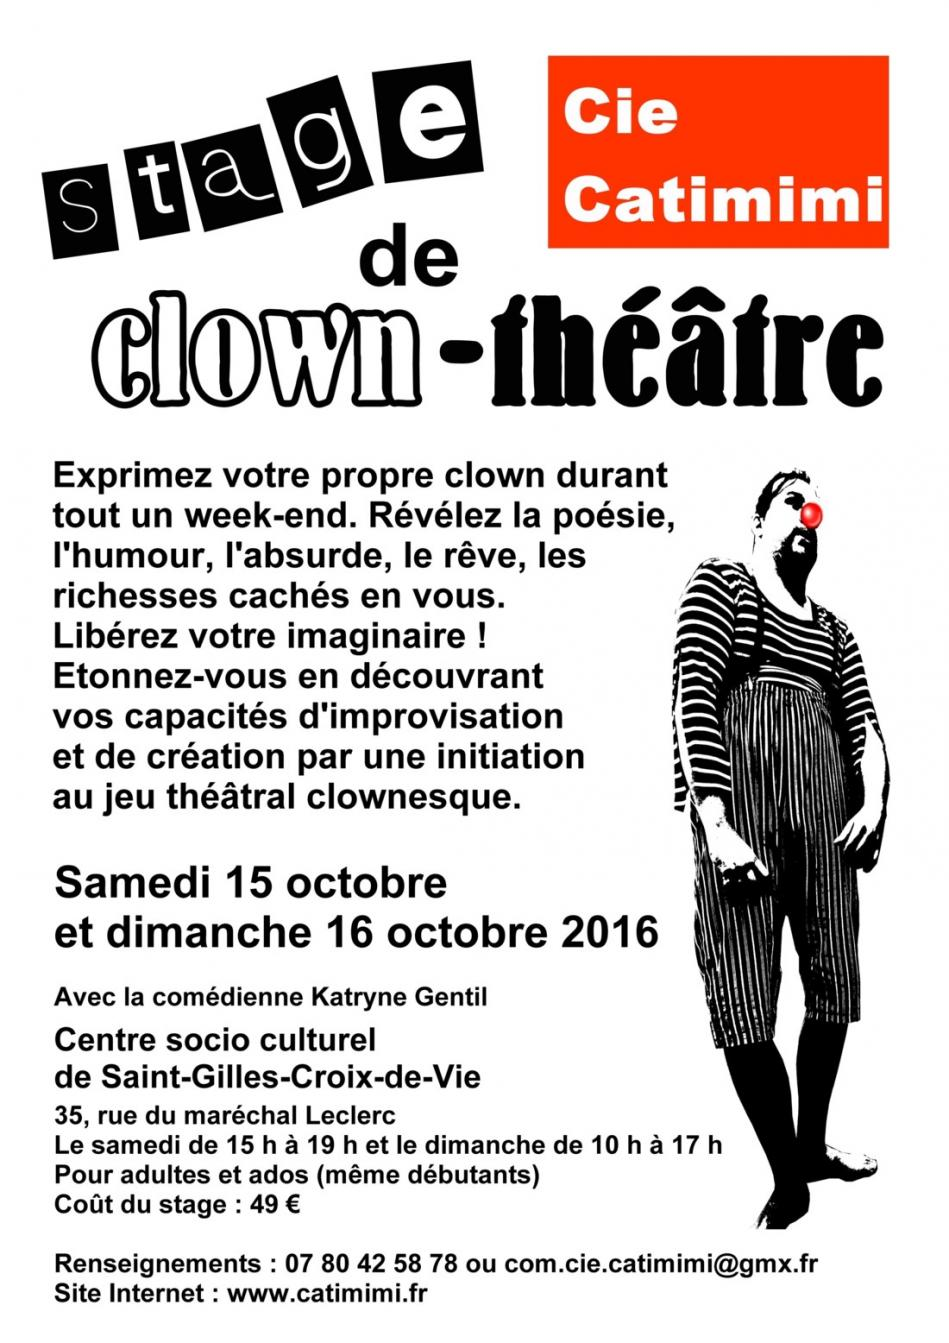 Cie catimimi stage clown theatre octobre 2016